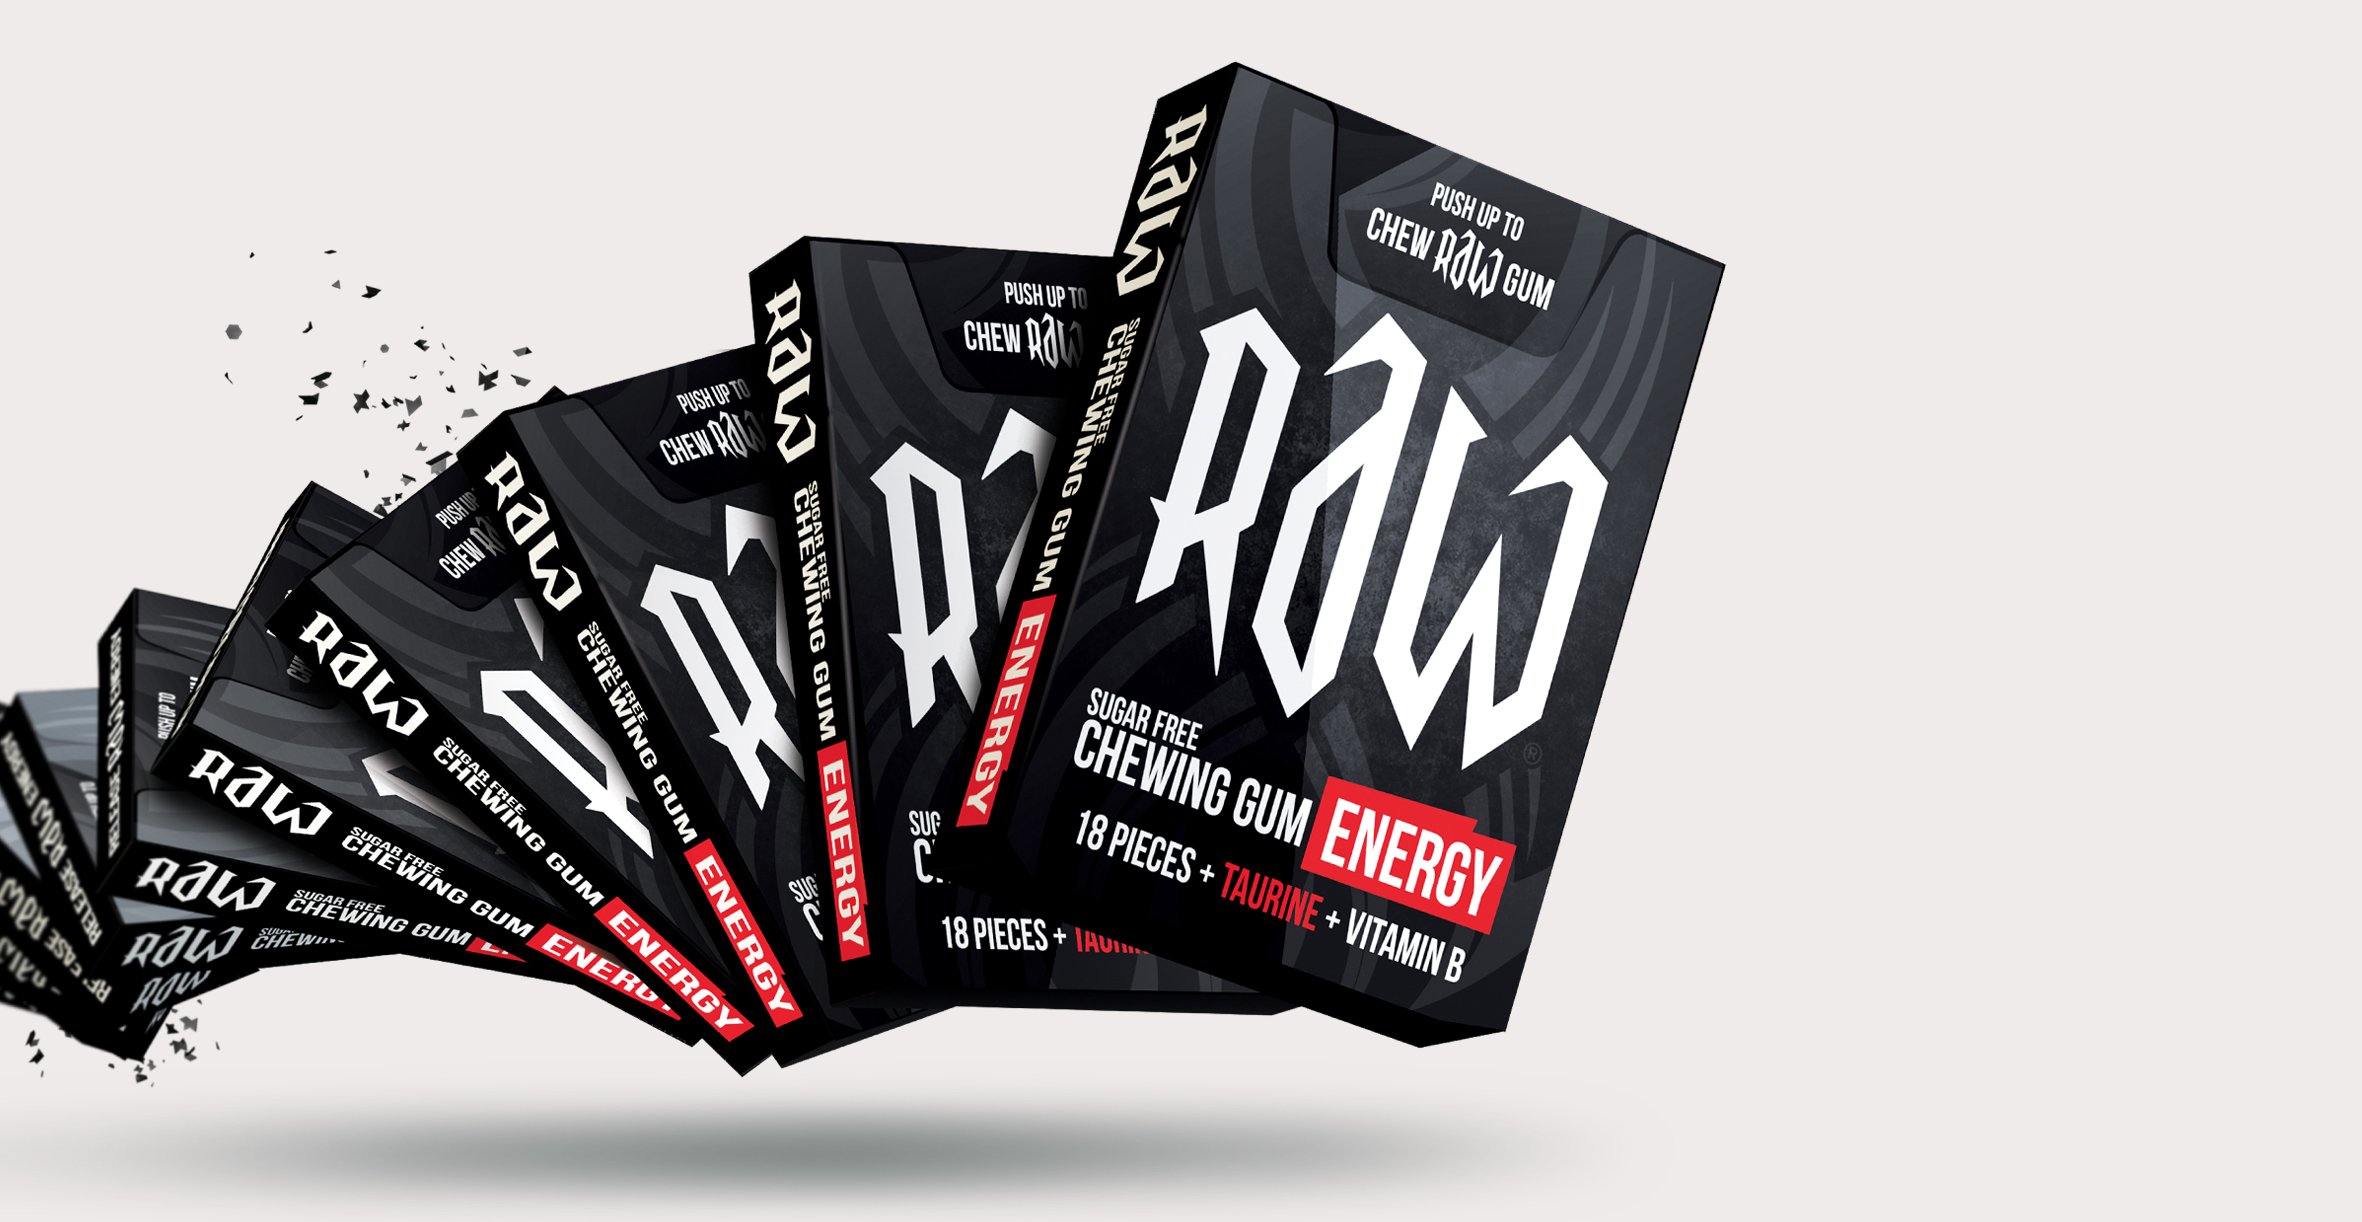 Confectionary packaging design and branding for chewing gum brand Raw by Design Happy London - Youth market chewing gum box packaging